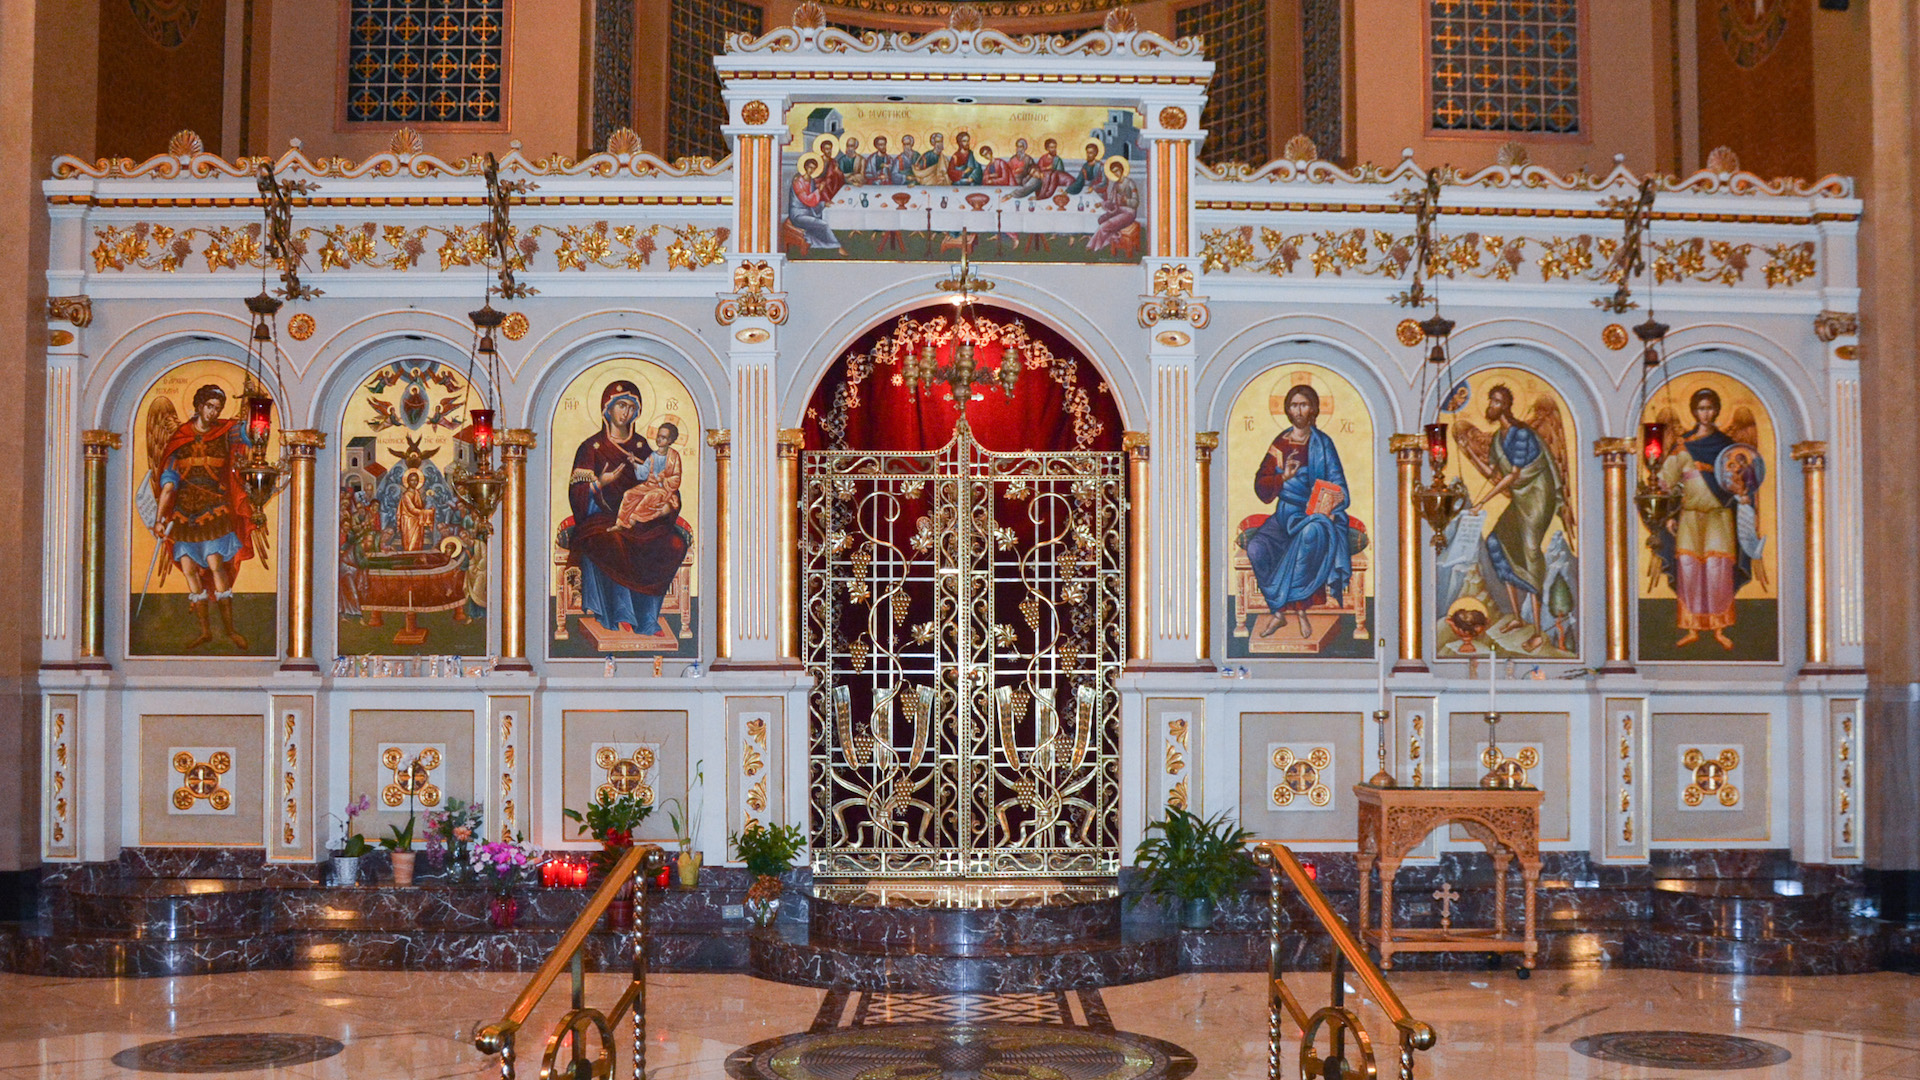 a report on the assumption greek orthodox church I am 100% greek and was surprised that on sunday the last day w as full of disappointment the food , the best the food , the best i don't want to go into details because it's our church but i hope it changes for next year.